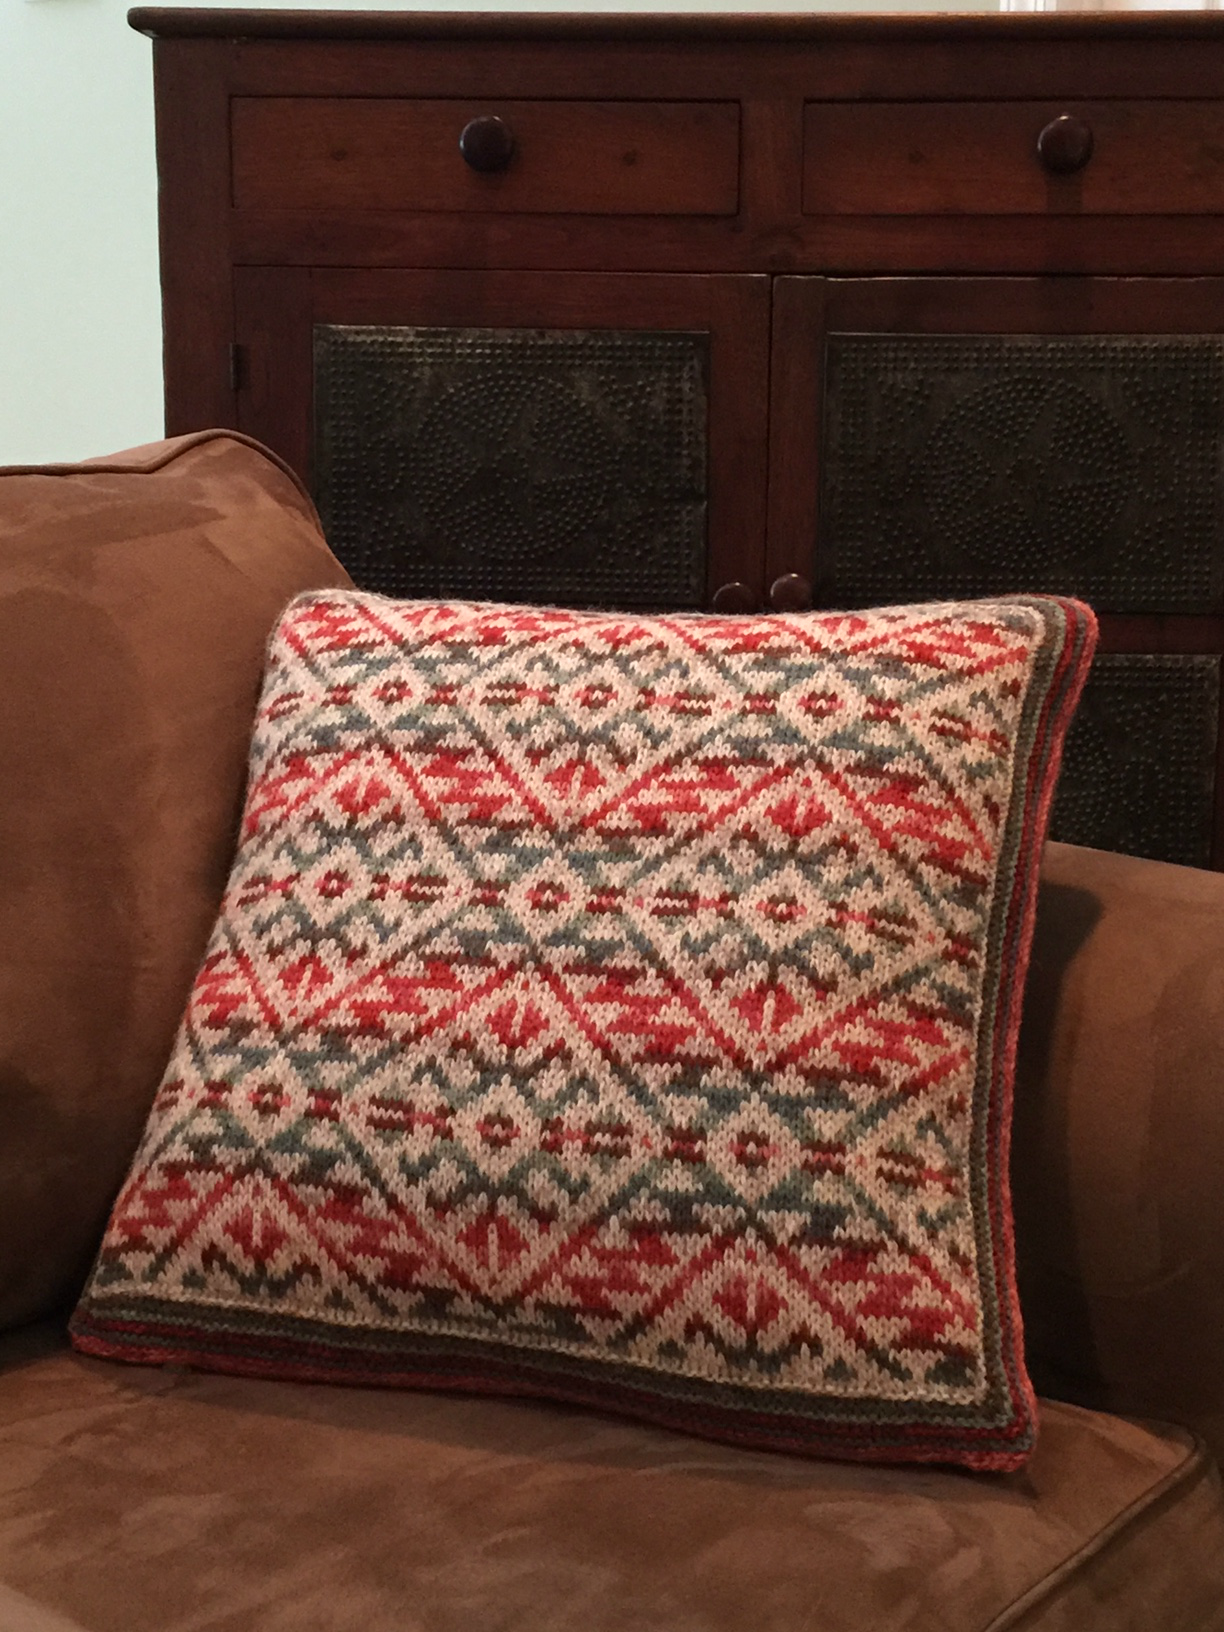 Fair Isle Catalina Highway Pillow in Jamieson's Shetland Spindrift yarn